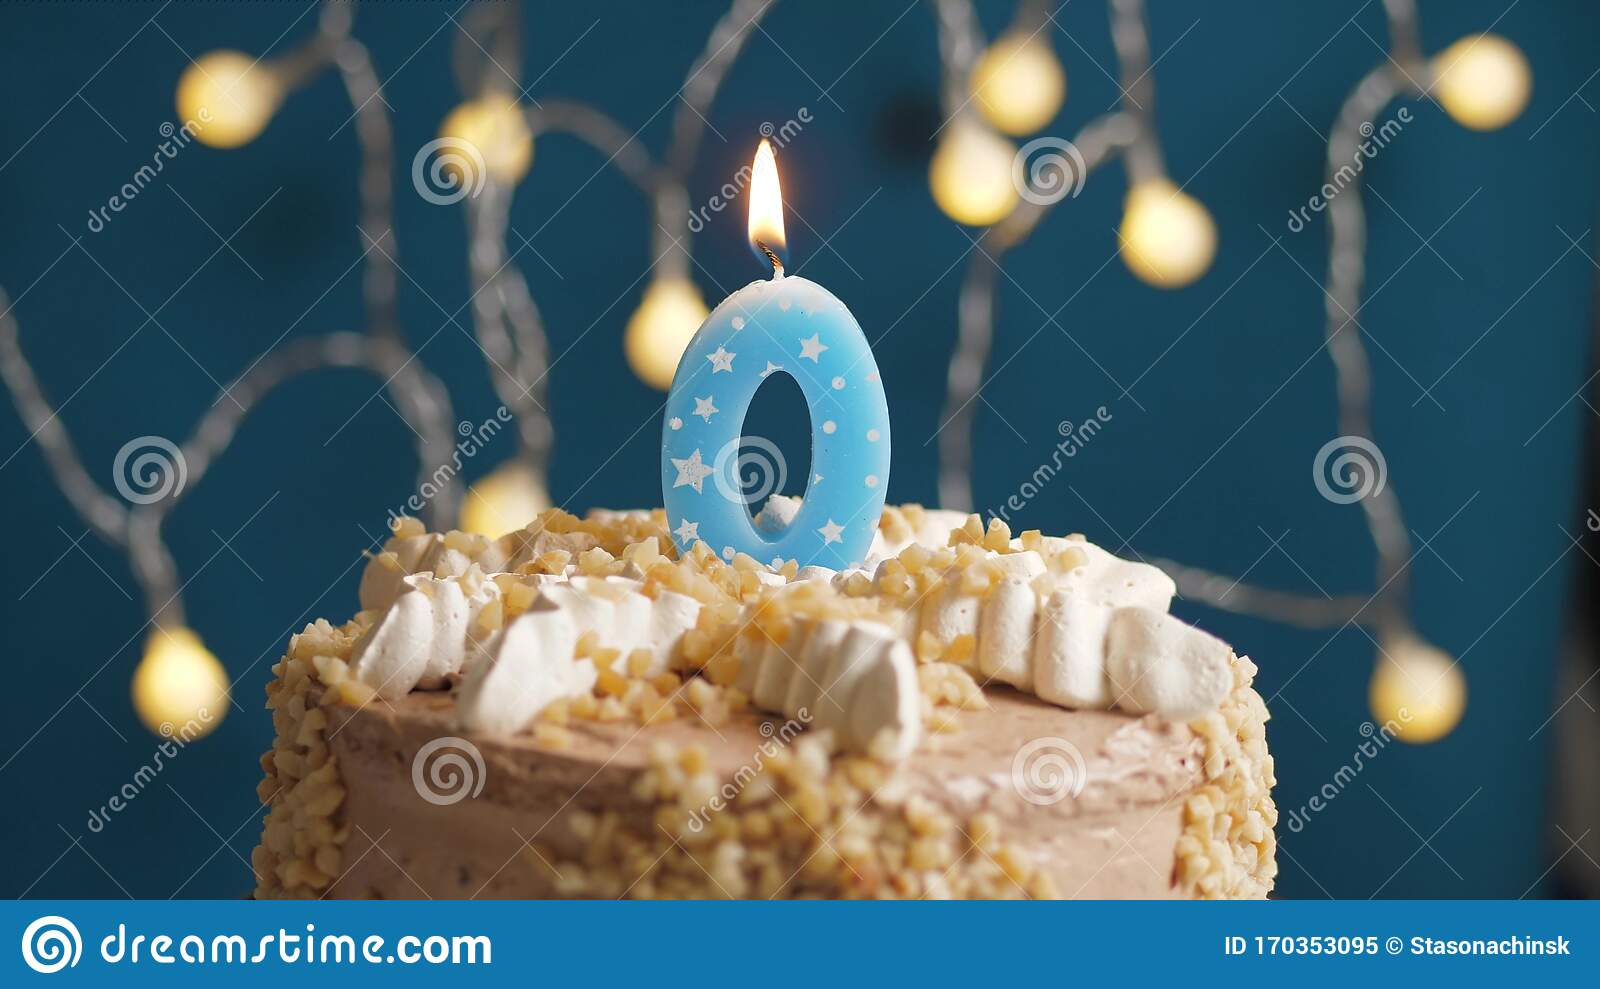 Superb Birthday Cake With 0 Number Candle On Blue Backgraund Candles Funny Birthday Cards Online Unhofree Goldxyz